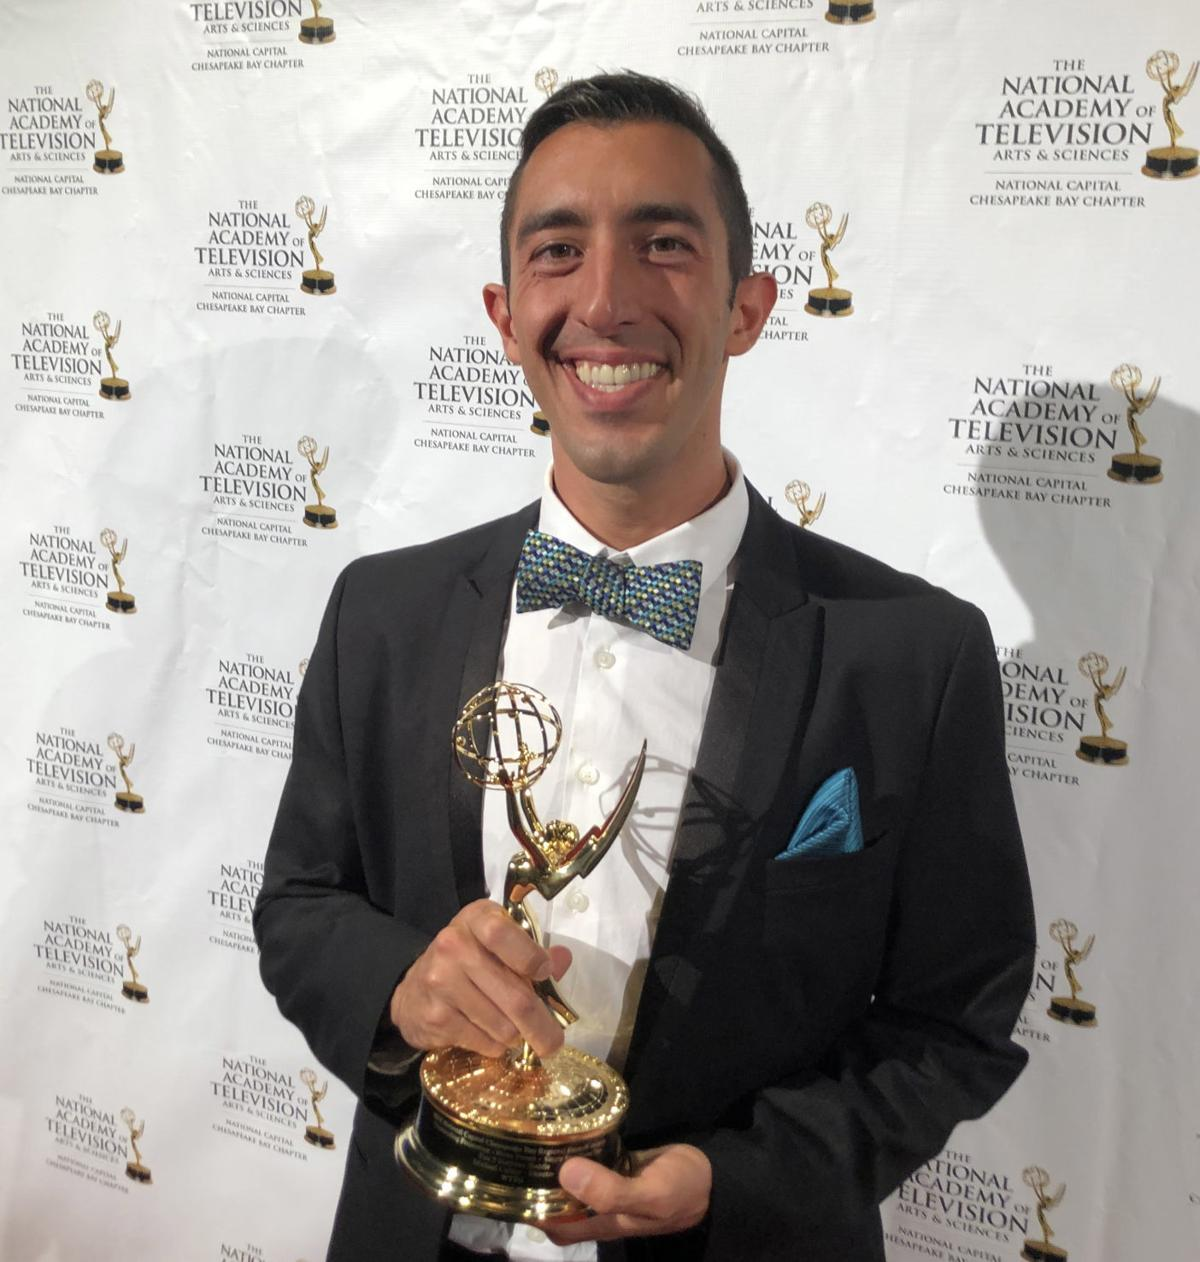 News director with local roots wins Emmy